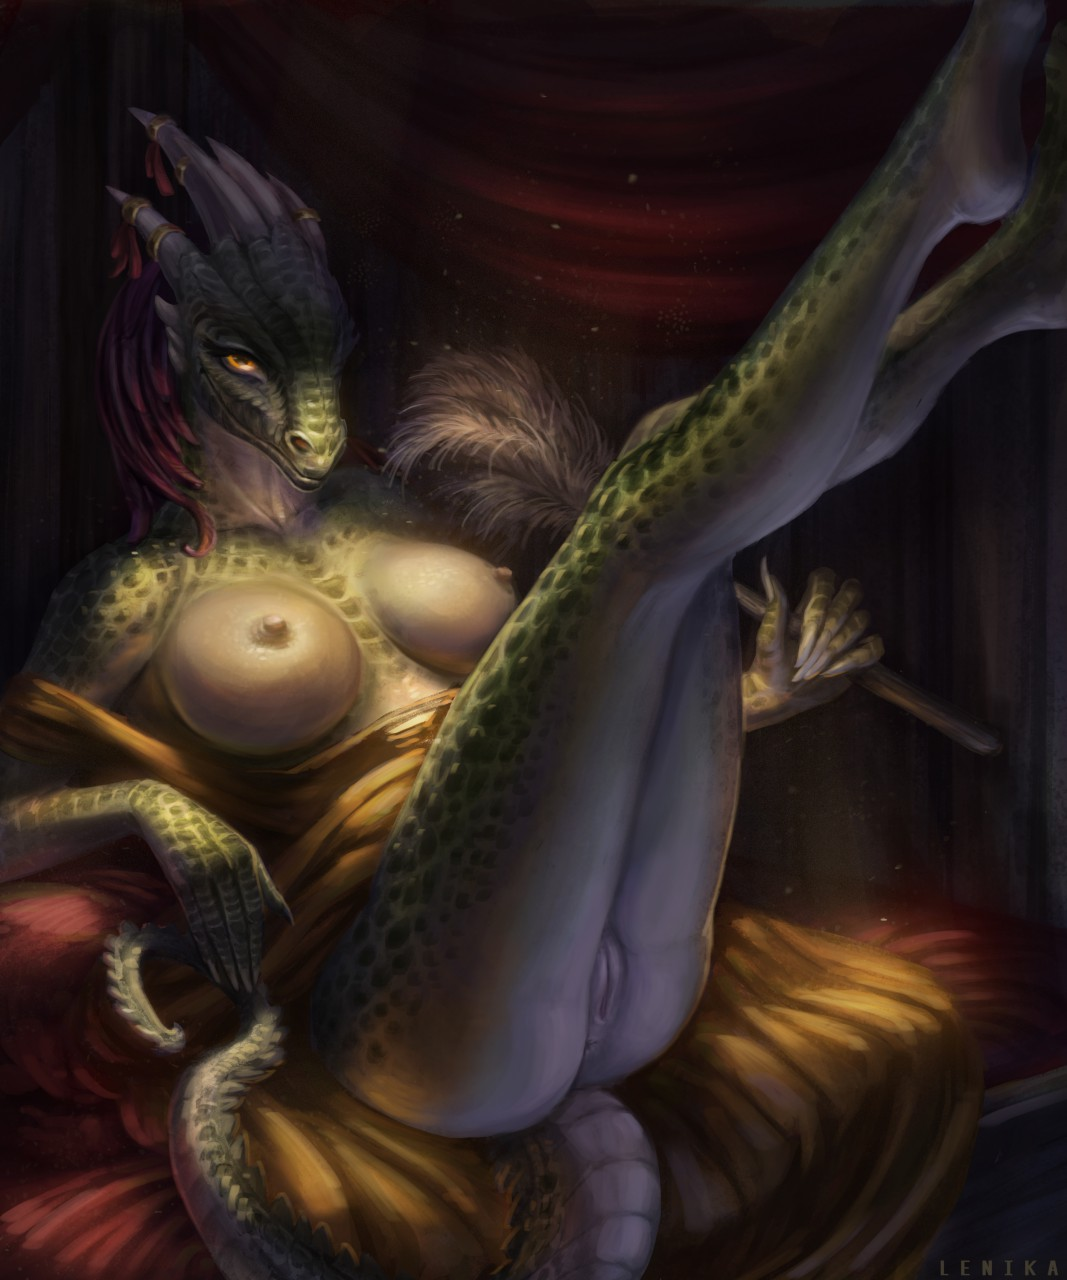 hentai the maid argonian lusty Nana darling in the franxx